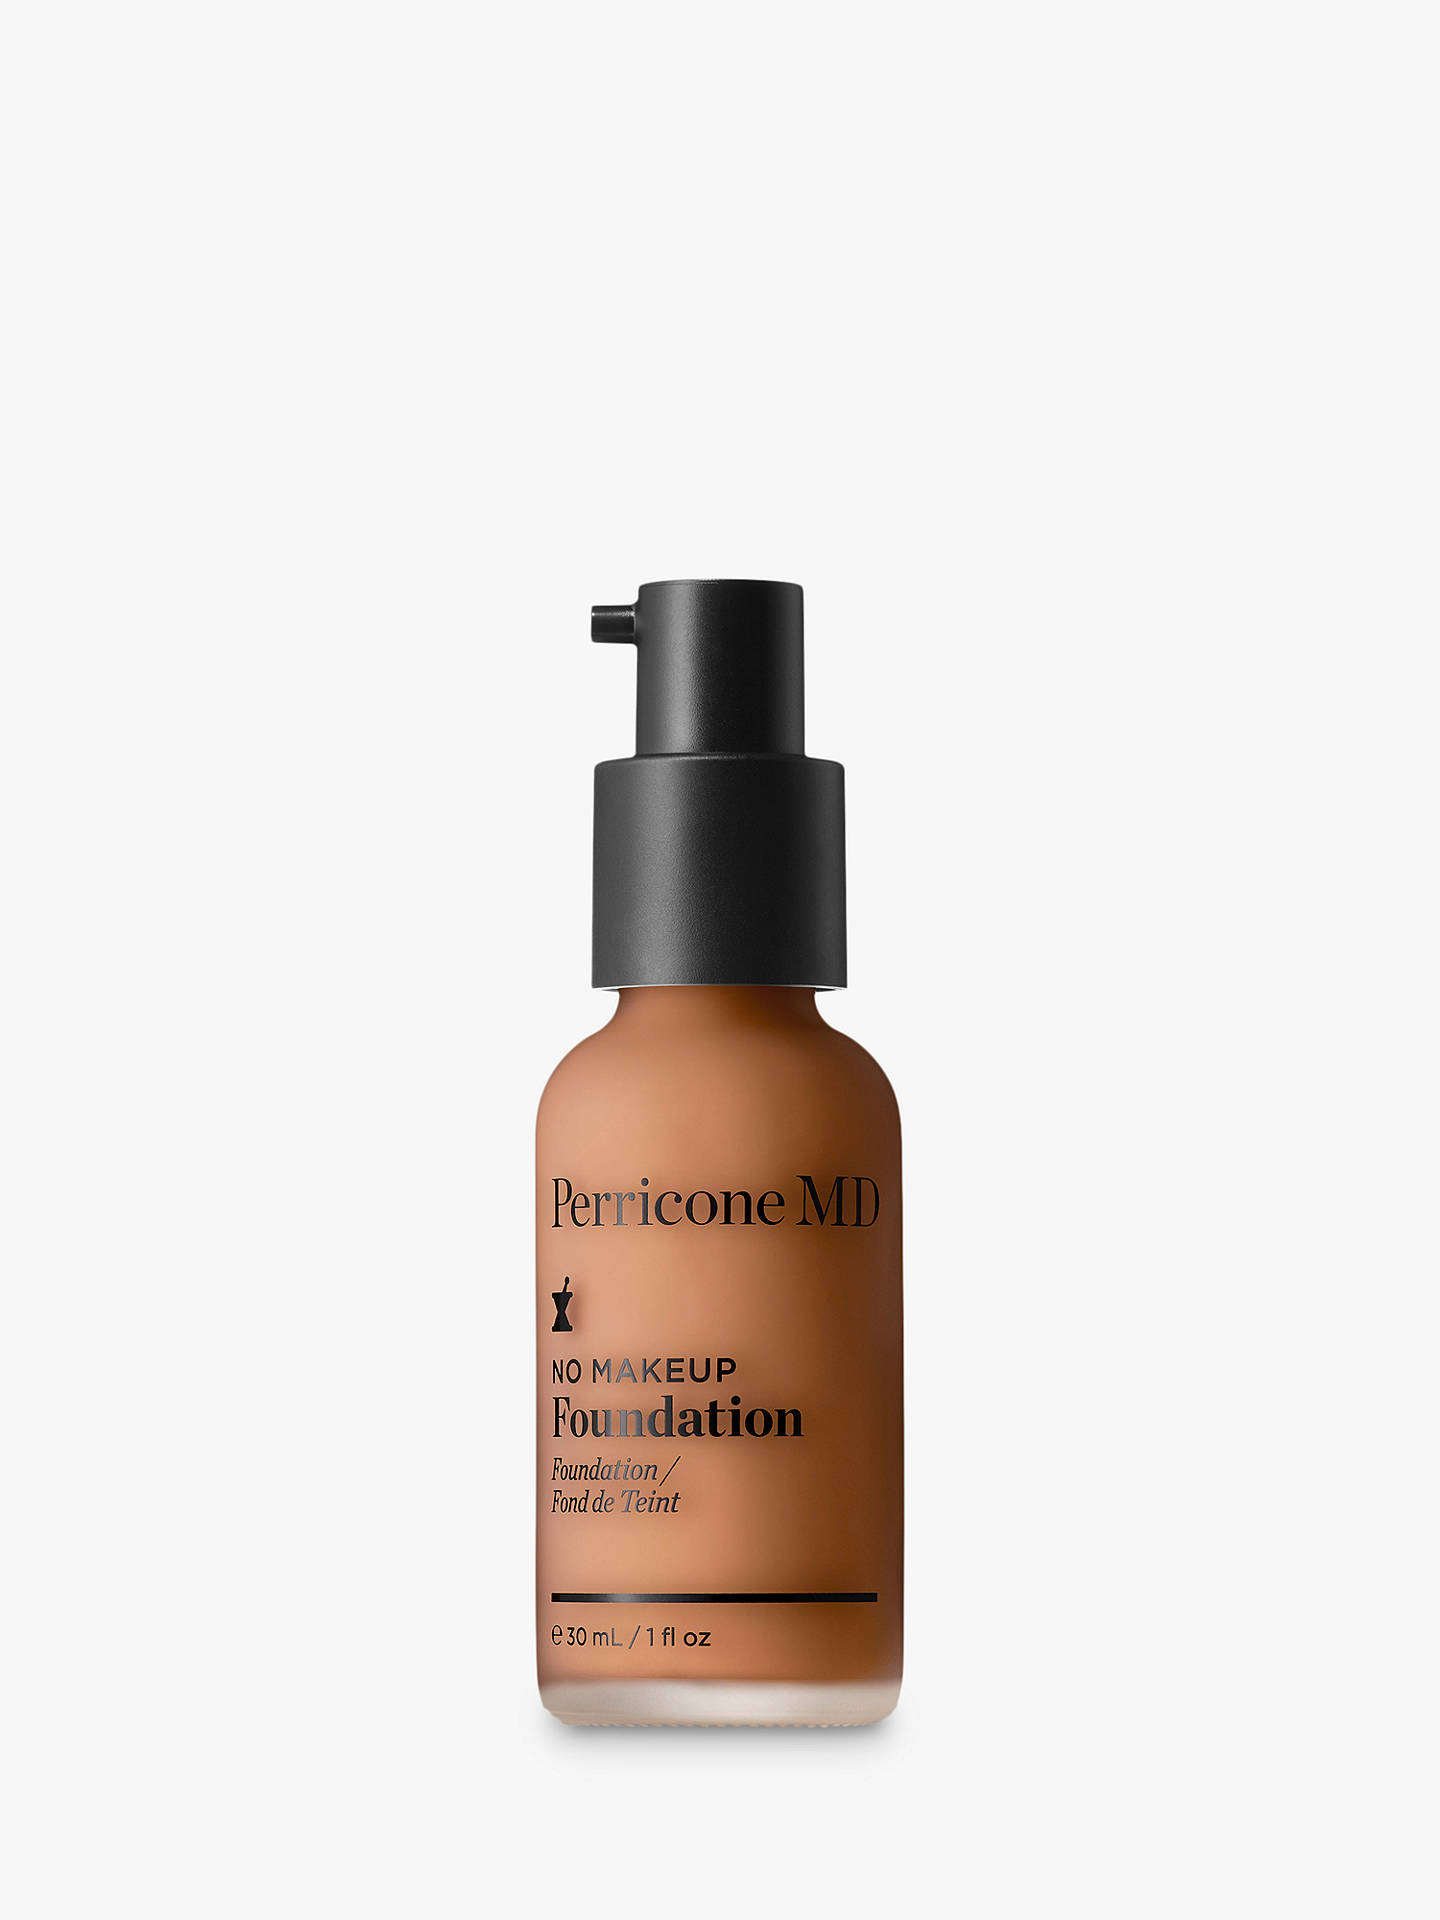 Perricone MD - No Makeup Foundation SPF 30 - Light by